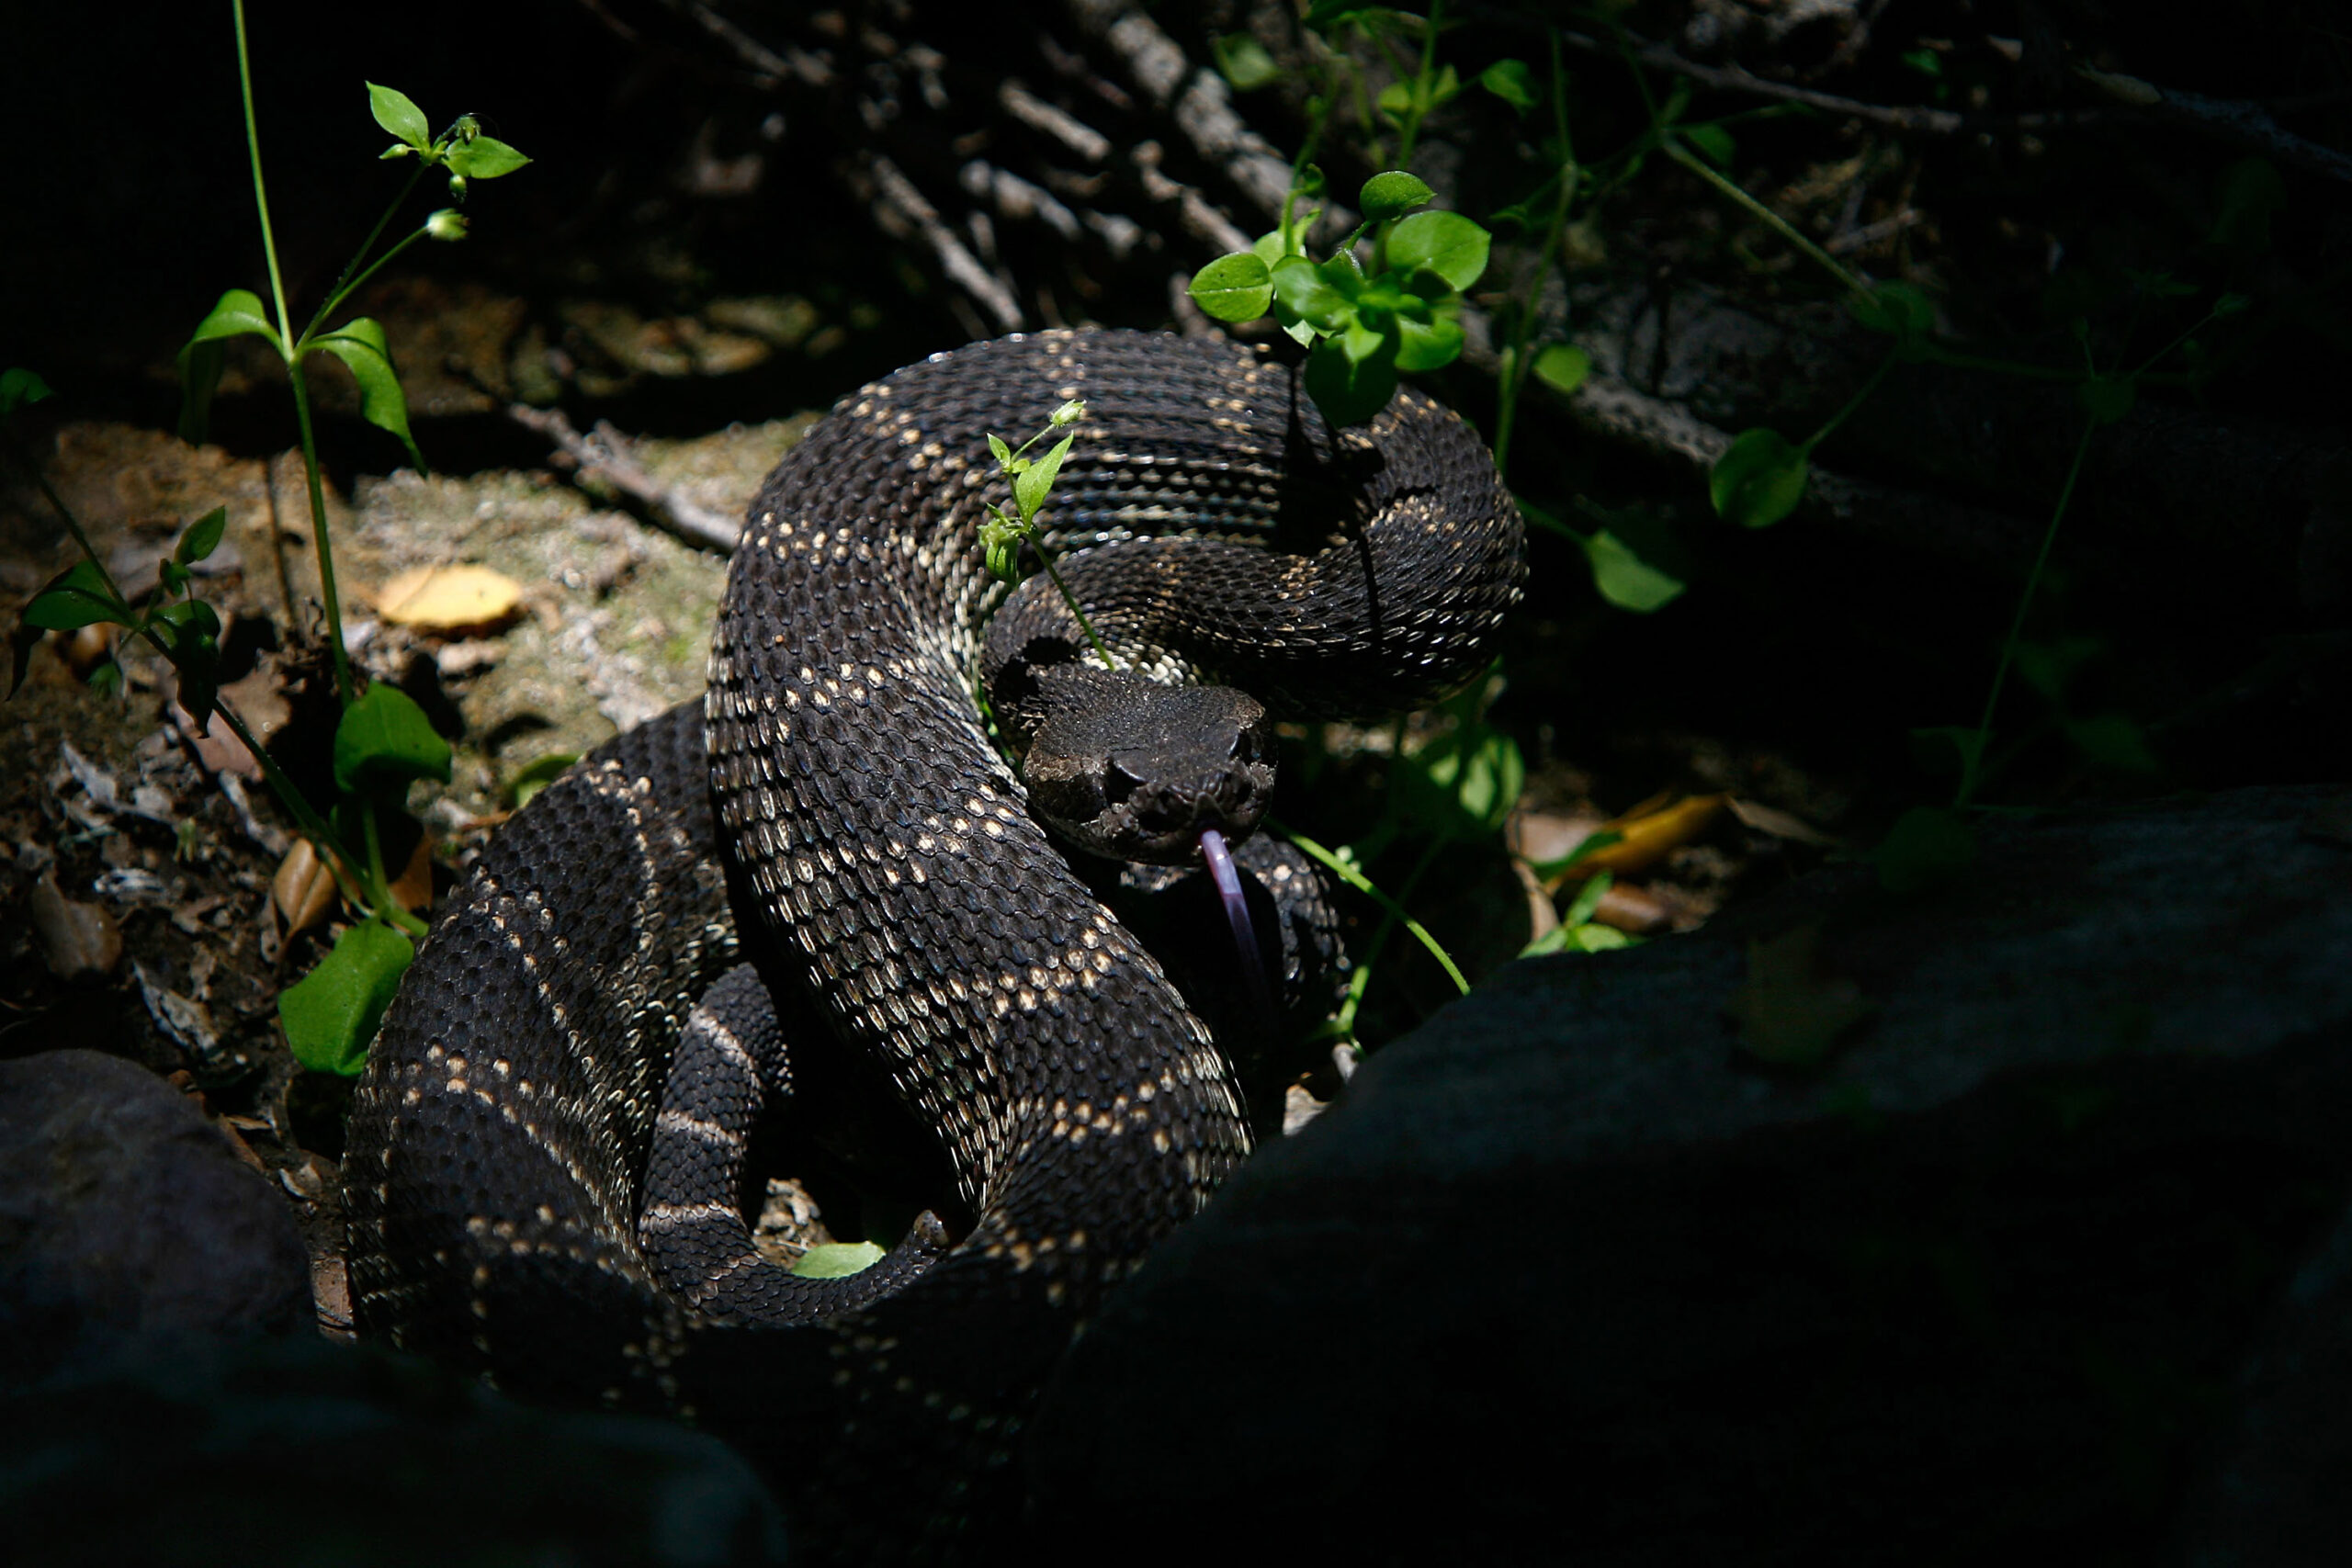 A venomous southern Pacific rattlesnake tastes the air in Santa Ynez Canyon in Topanga State Park on May 21, 2008 in Los Angeles, California. Credit: David McNew/Getty Images